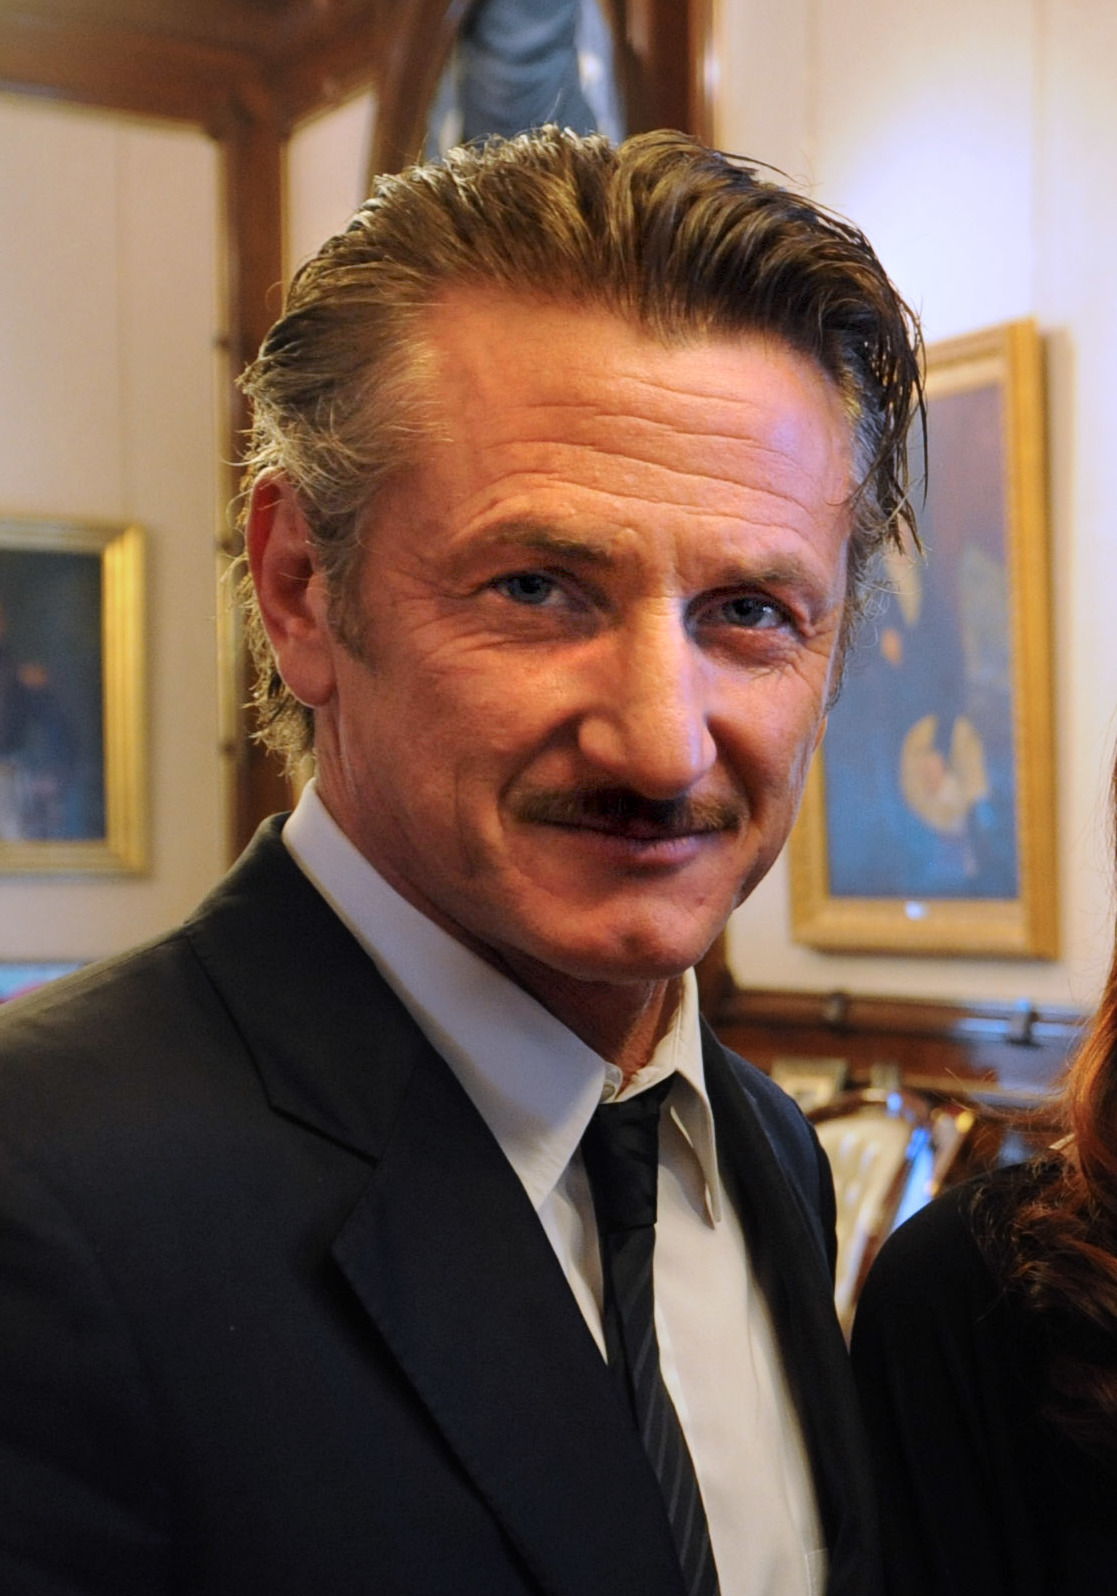 sean penn actor portrait